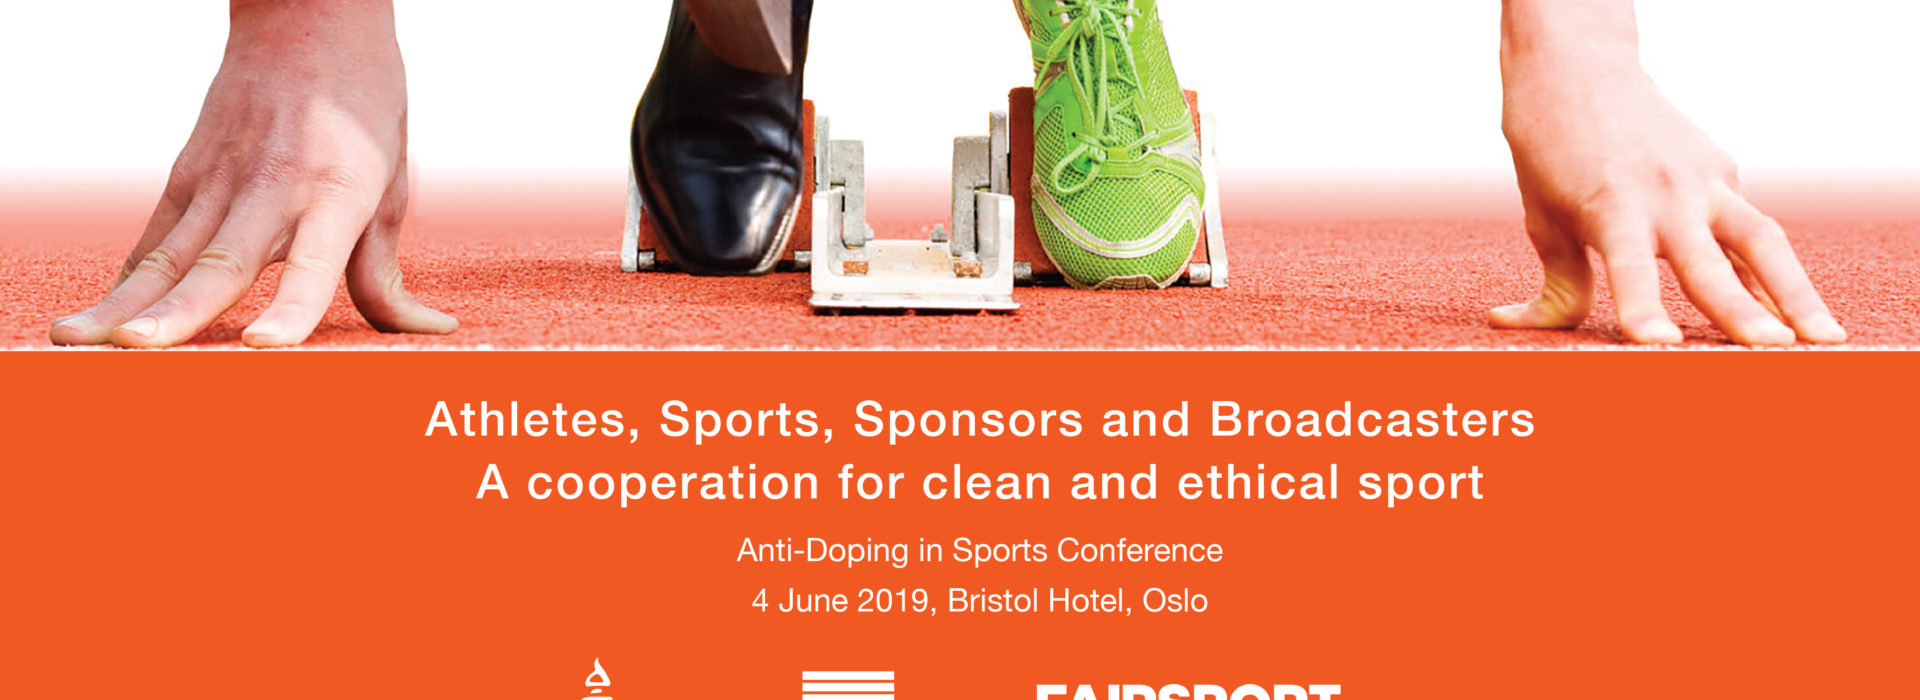 Anti-Doping Conference_Oslo, 2019_PQ-1